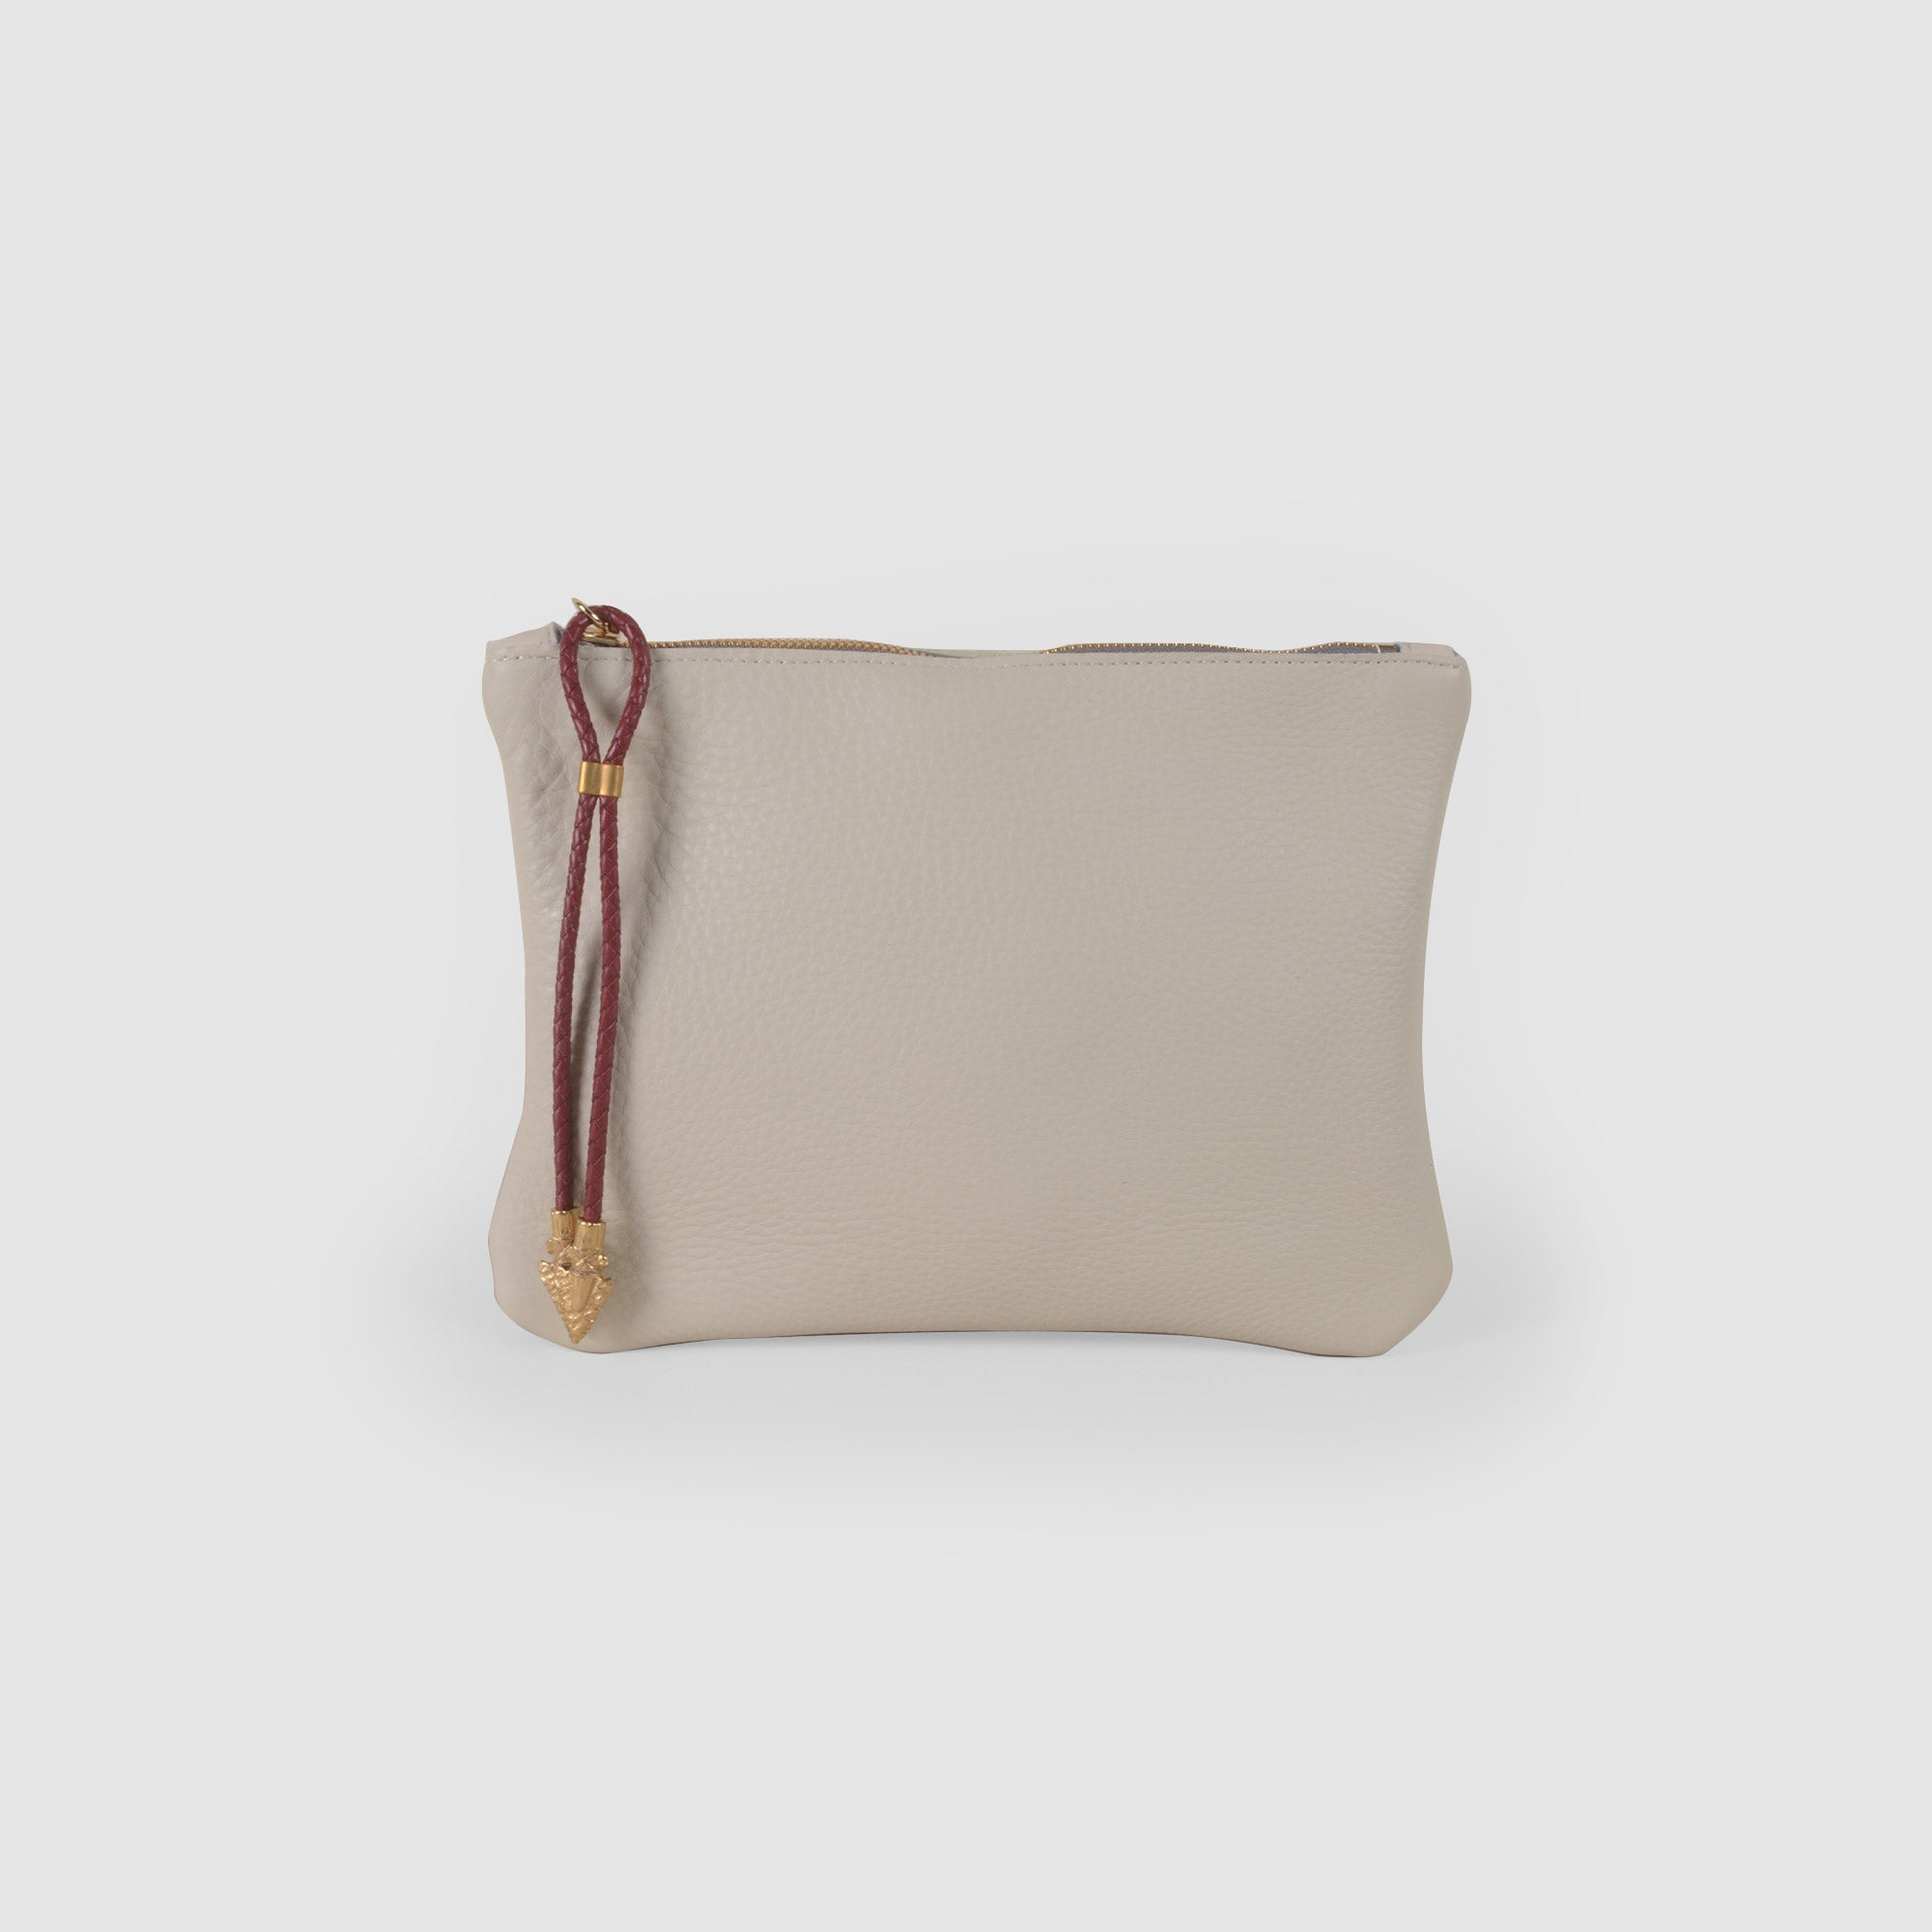 BOLO ARROW PULL CLUTCH  //  BONE AND SCARLETT